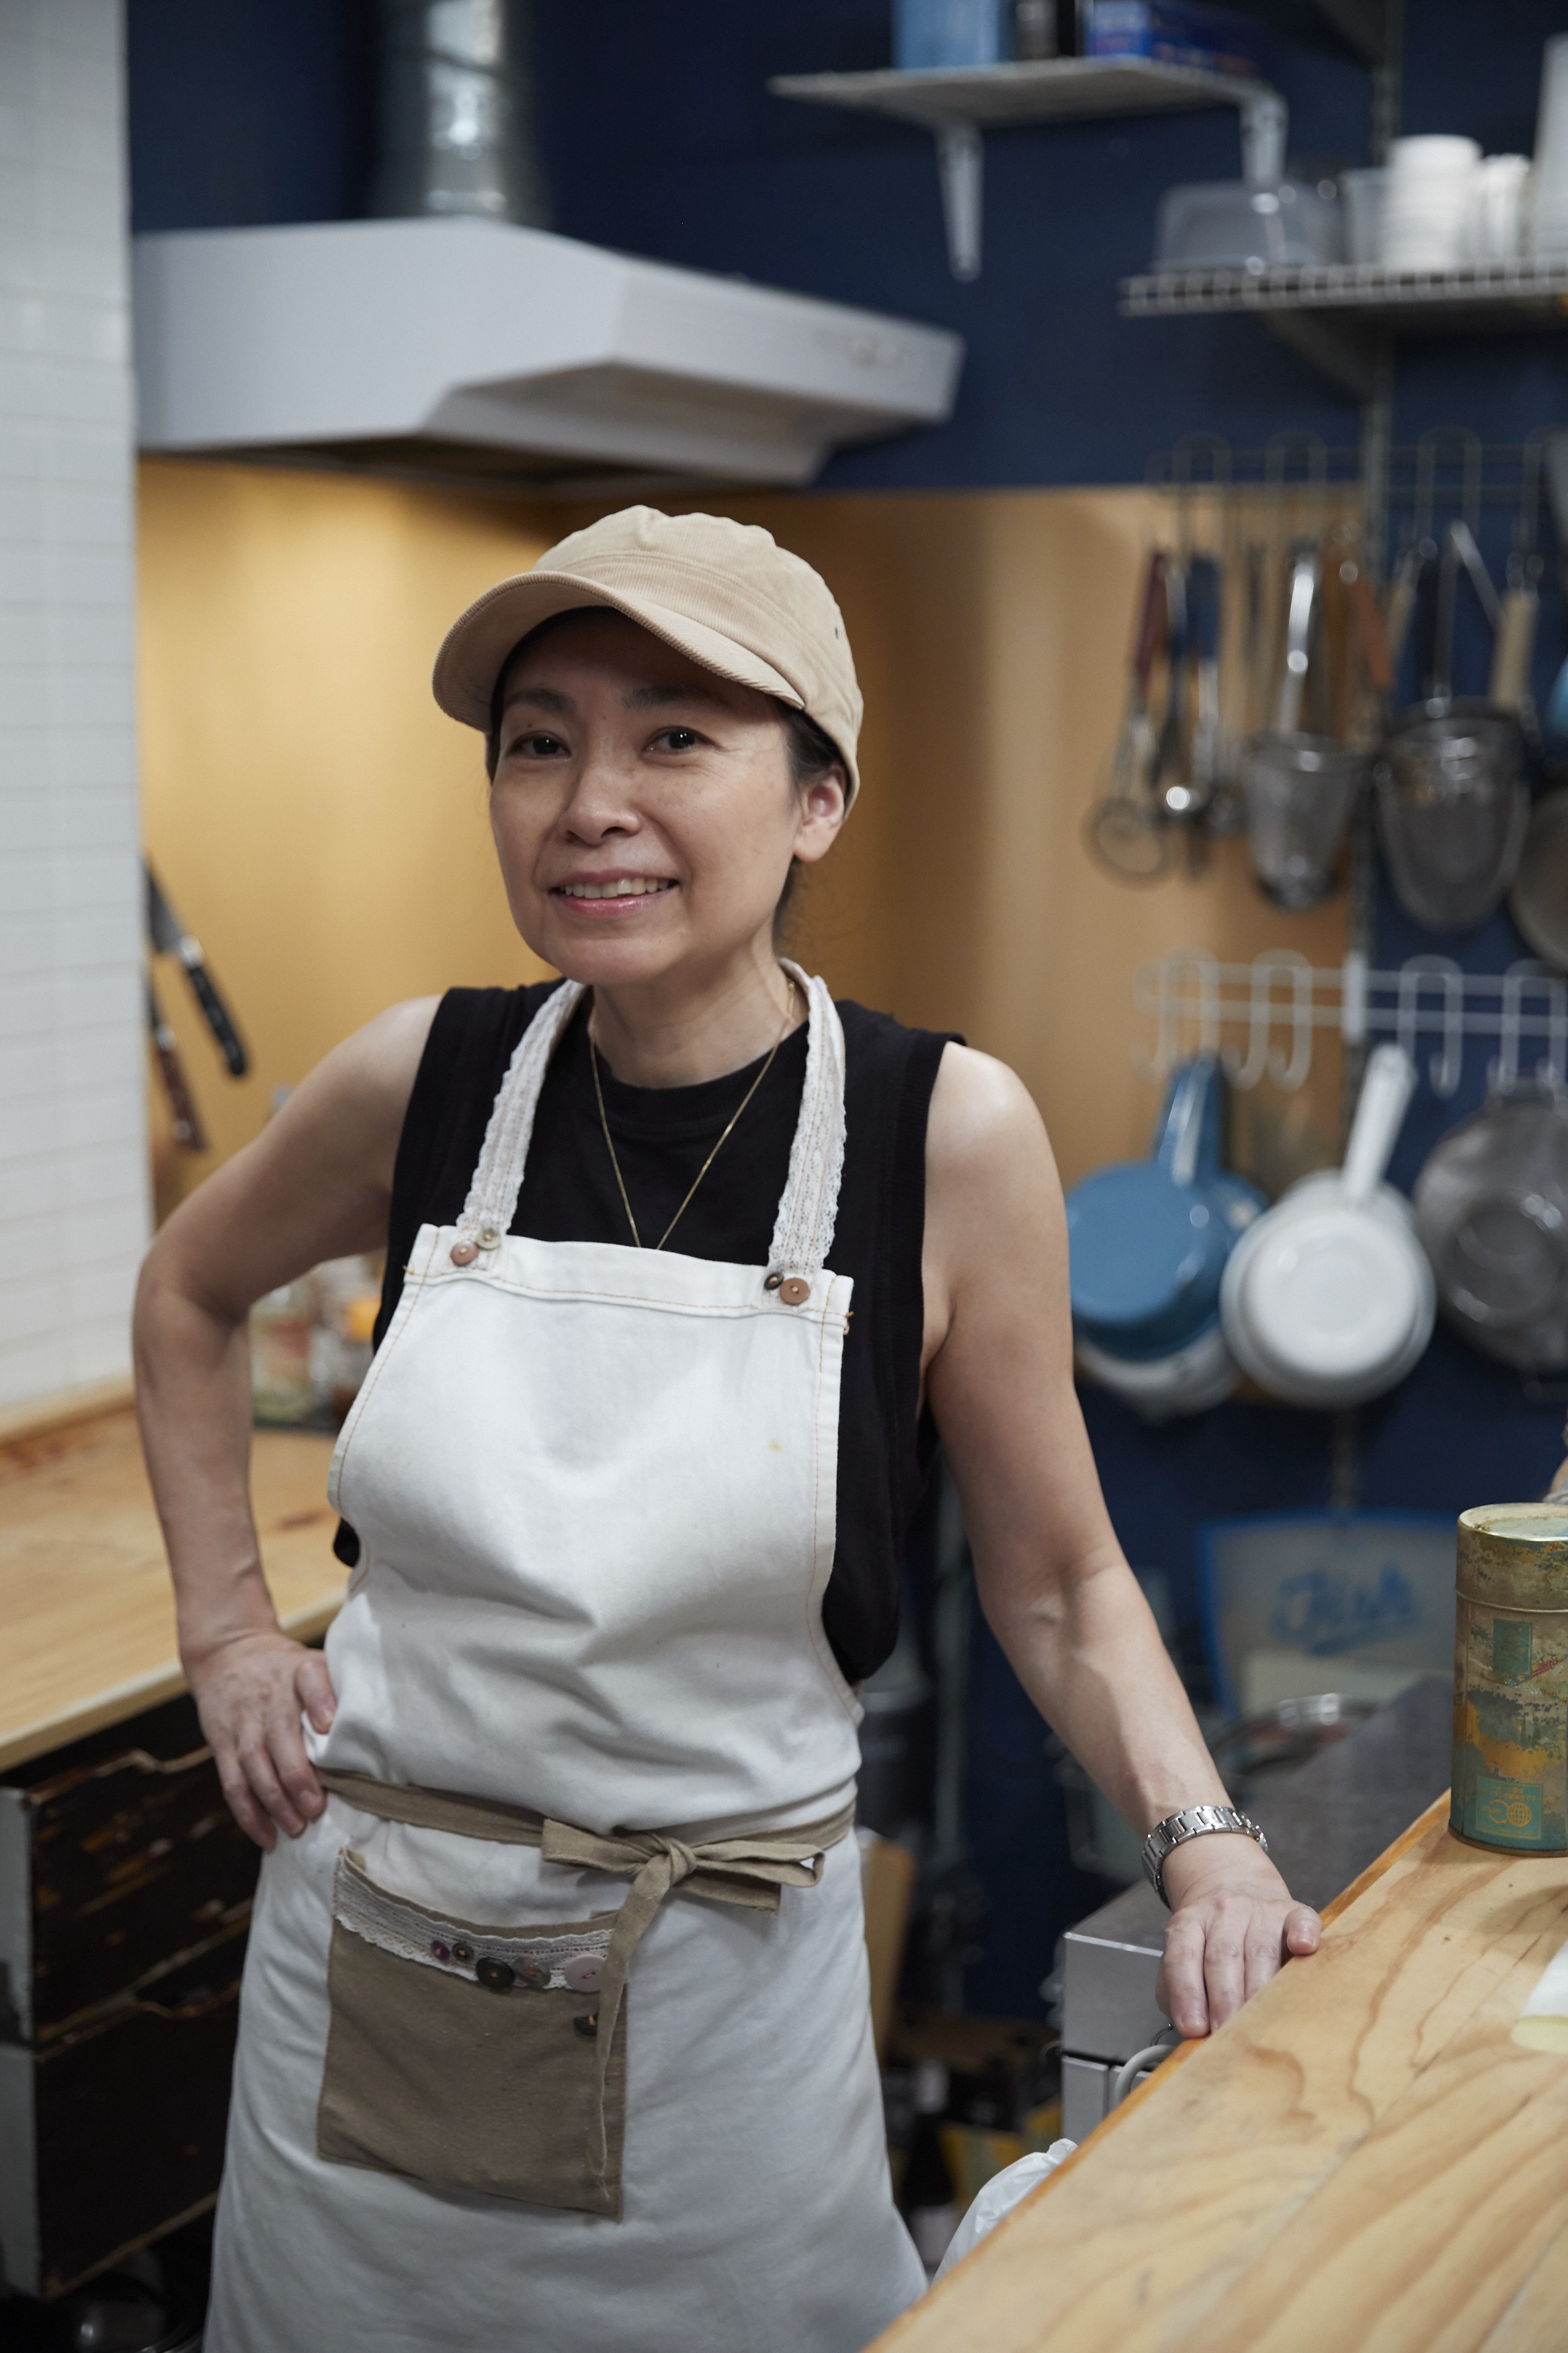 Yumika Parsley Opened a Harlem Restaurant for 'Survival'